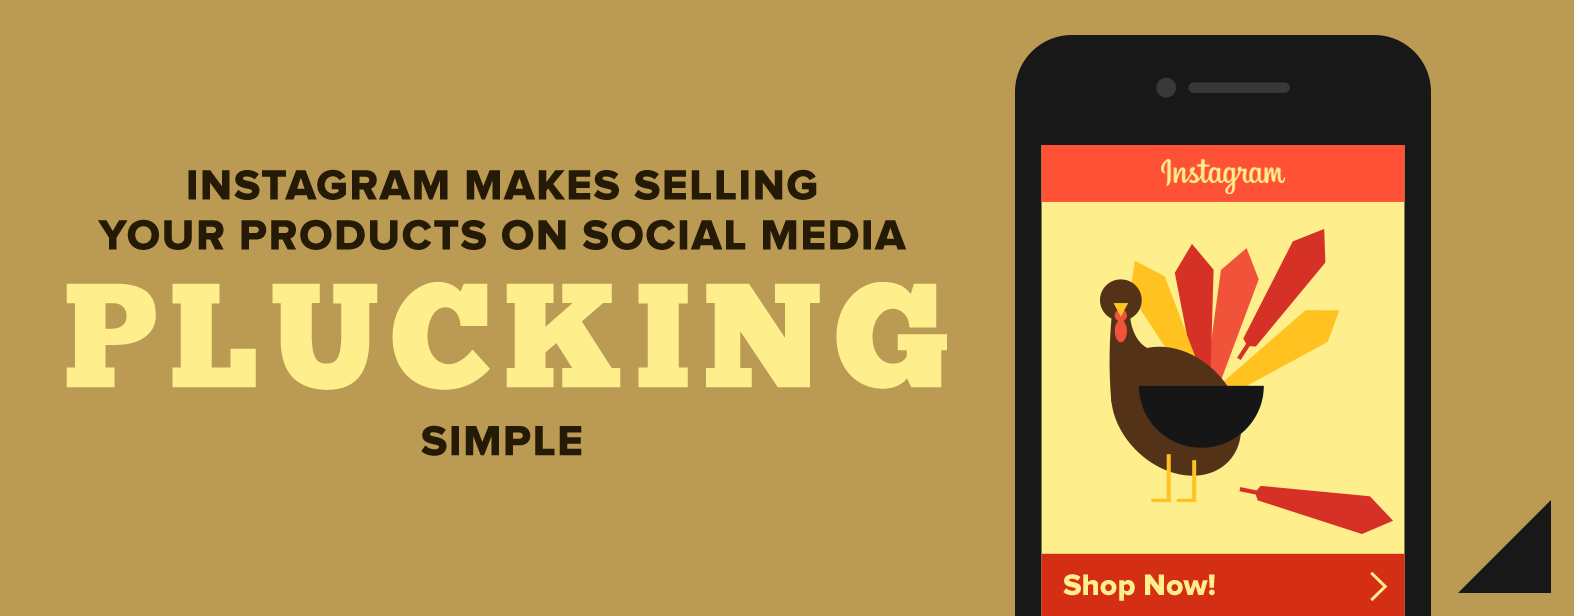 Instagram makes selling your products on social media plucking simple.